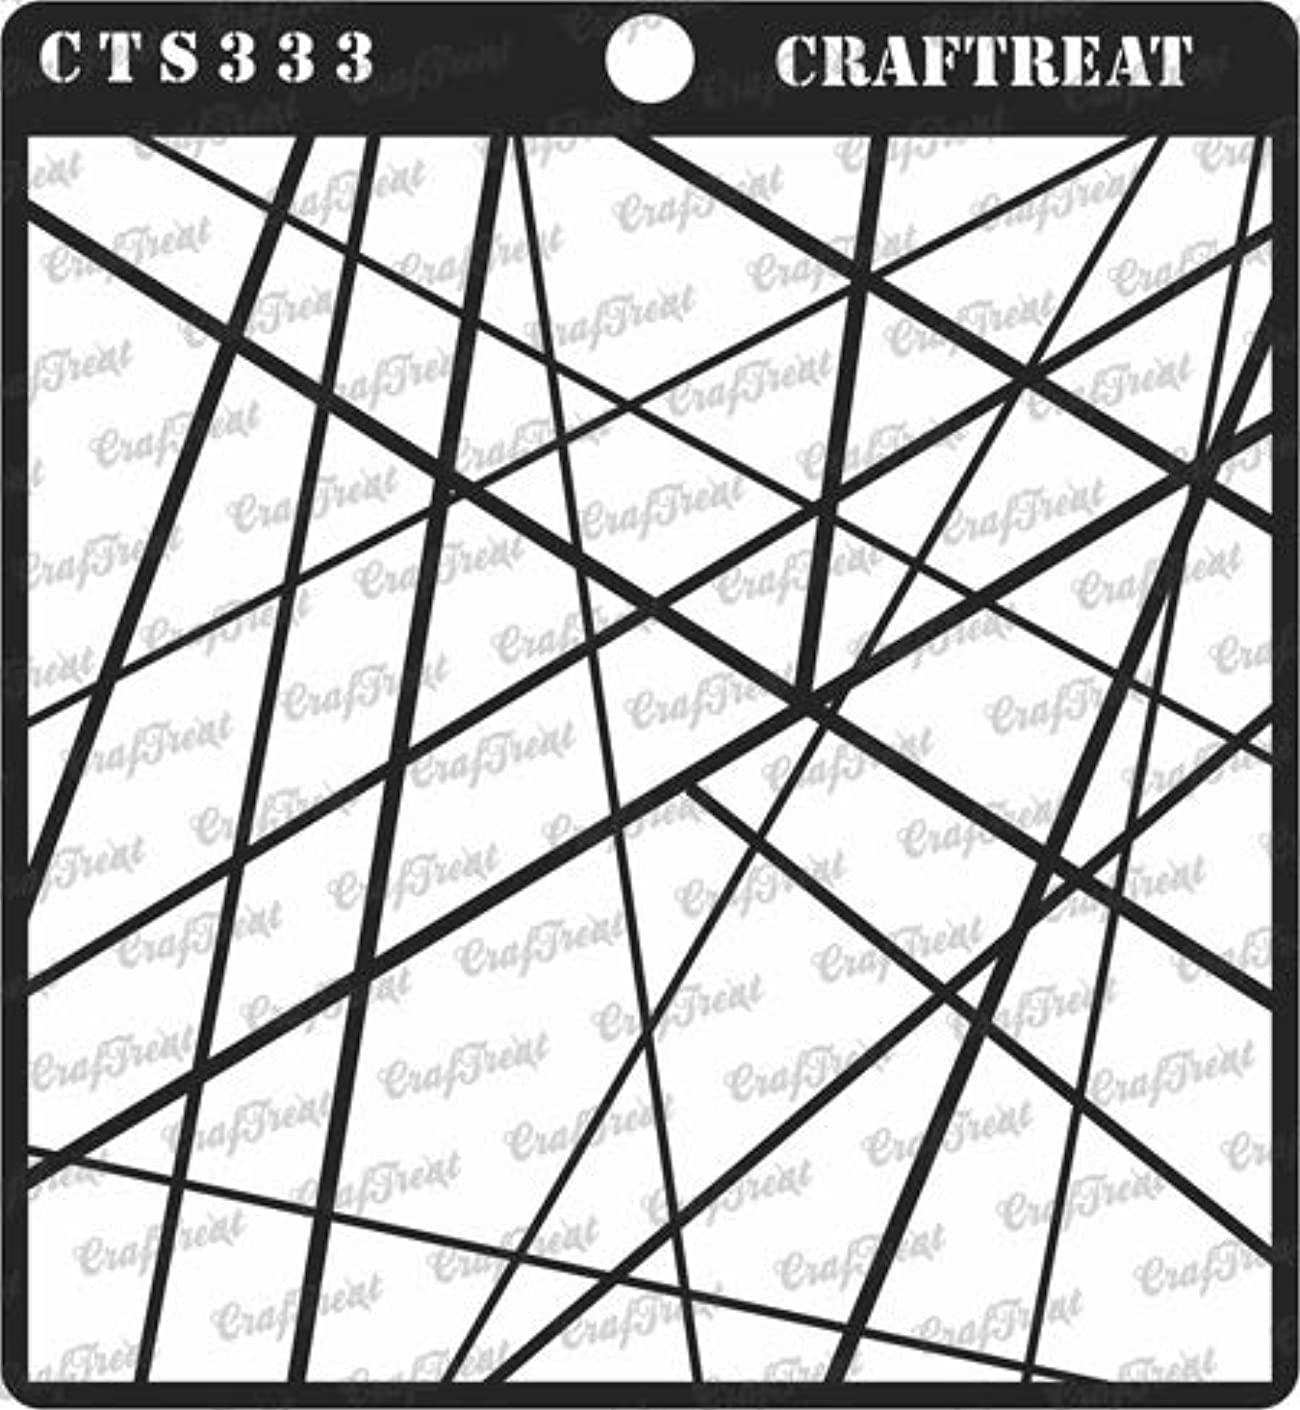 CrafTreat Stencil - Asymmetrical Lines | Reusable Painting Template for Journal, Notebook, Home Decor, Crafting, DIY Albums, Scrapbook and Printing on Paper, Floor, Wall, Tile, Fabric, Wood 6